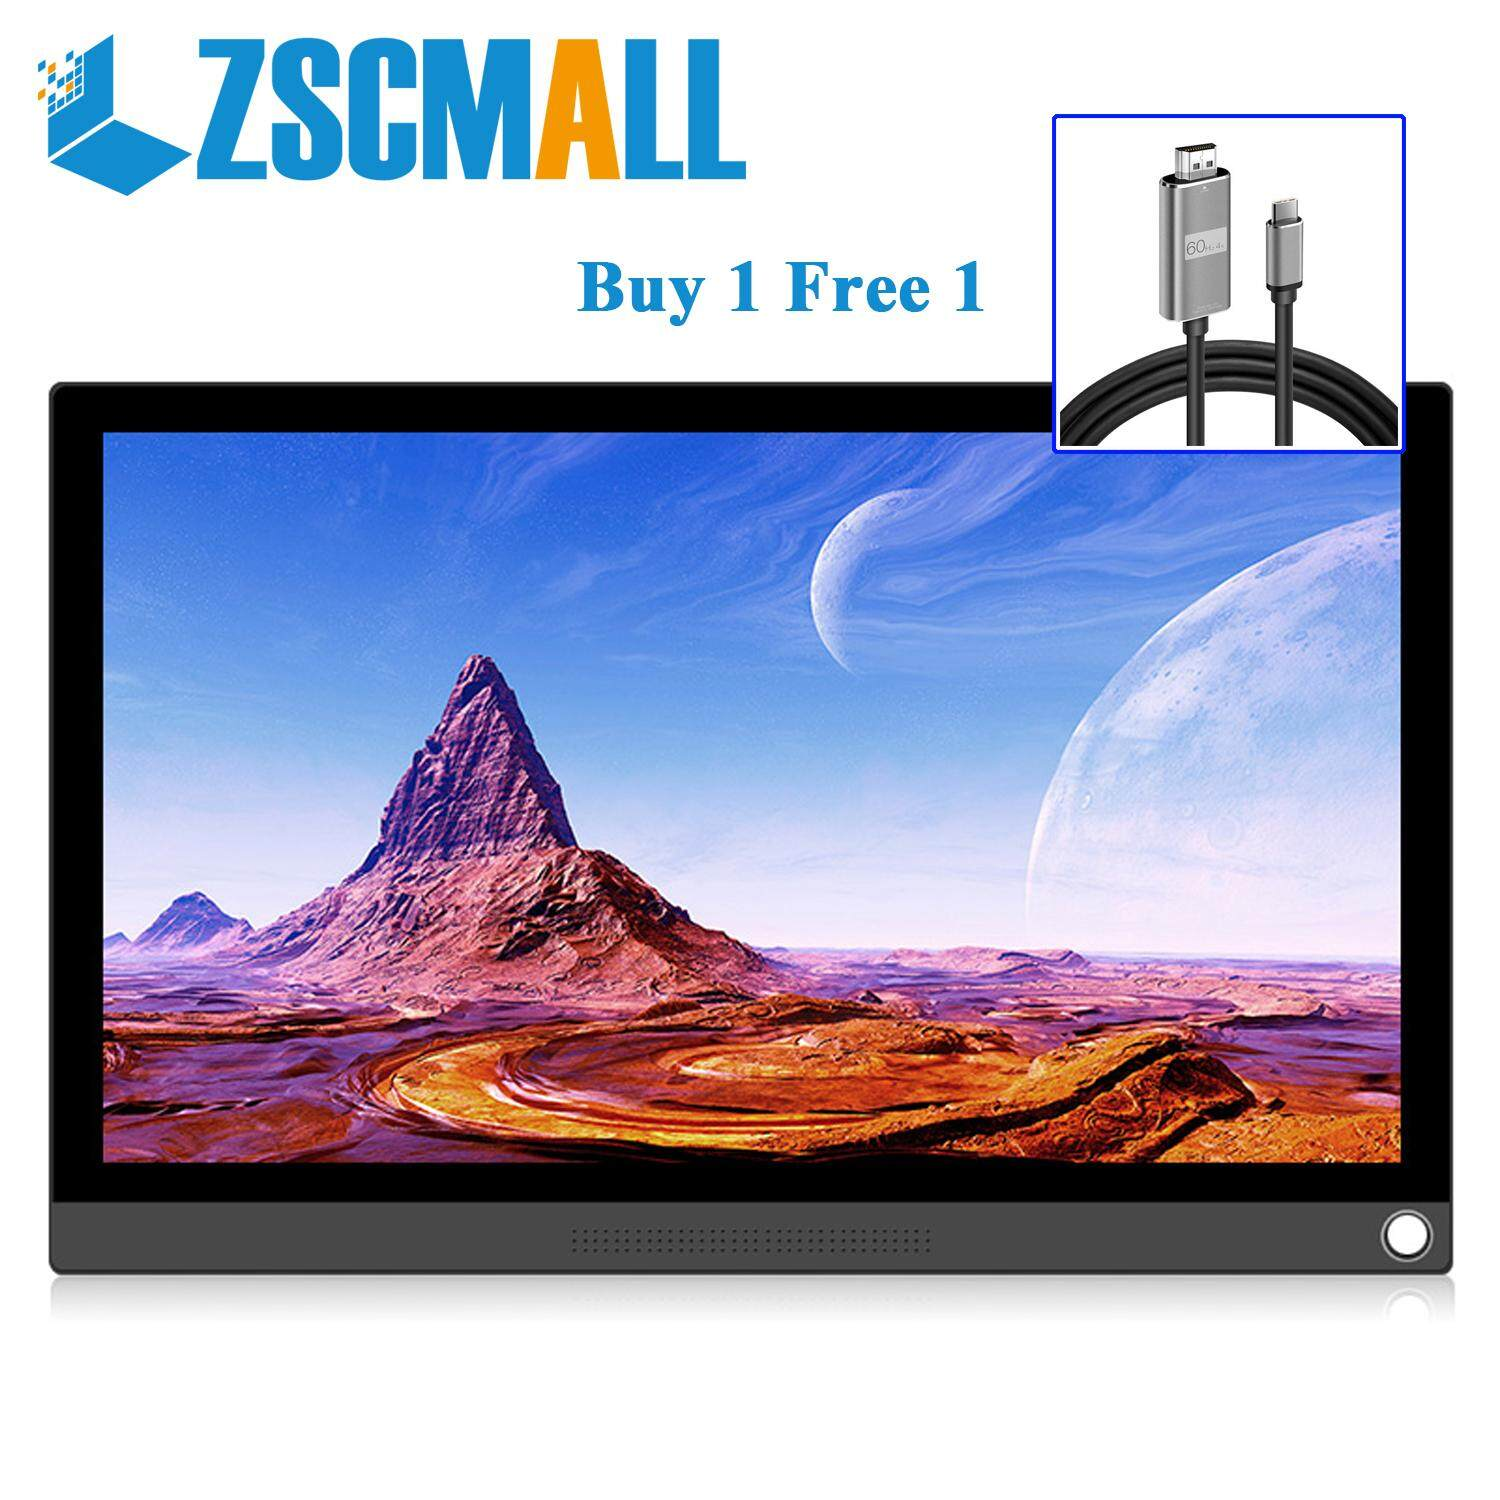 "ZSCMALL Touch Screen Monitor 15.6"" USB Type-C Full HD 1080 IPS USB C Portable Monitor Built-in Dual Speakers and Battery Compatible with Laptop Computer Raspberry pi Gaming Monitor for PS4 PS3 Xbox Free Shipping Malaysia"